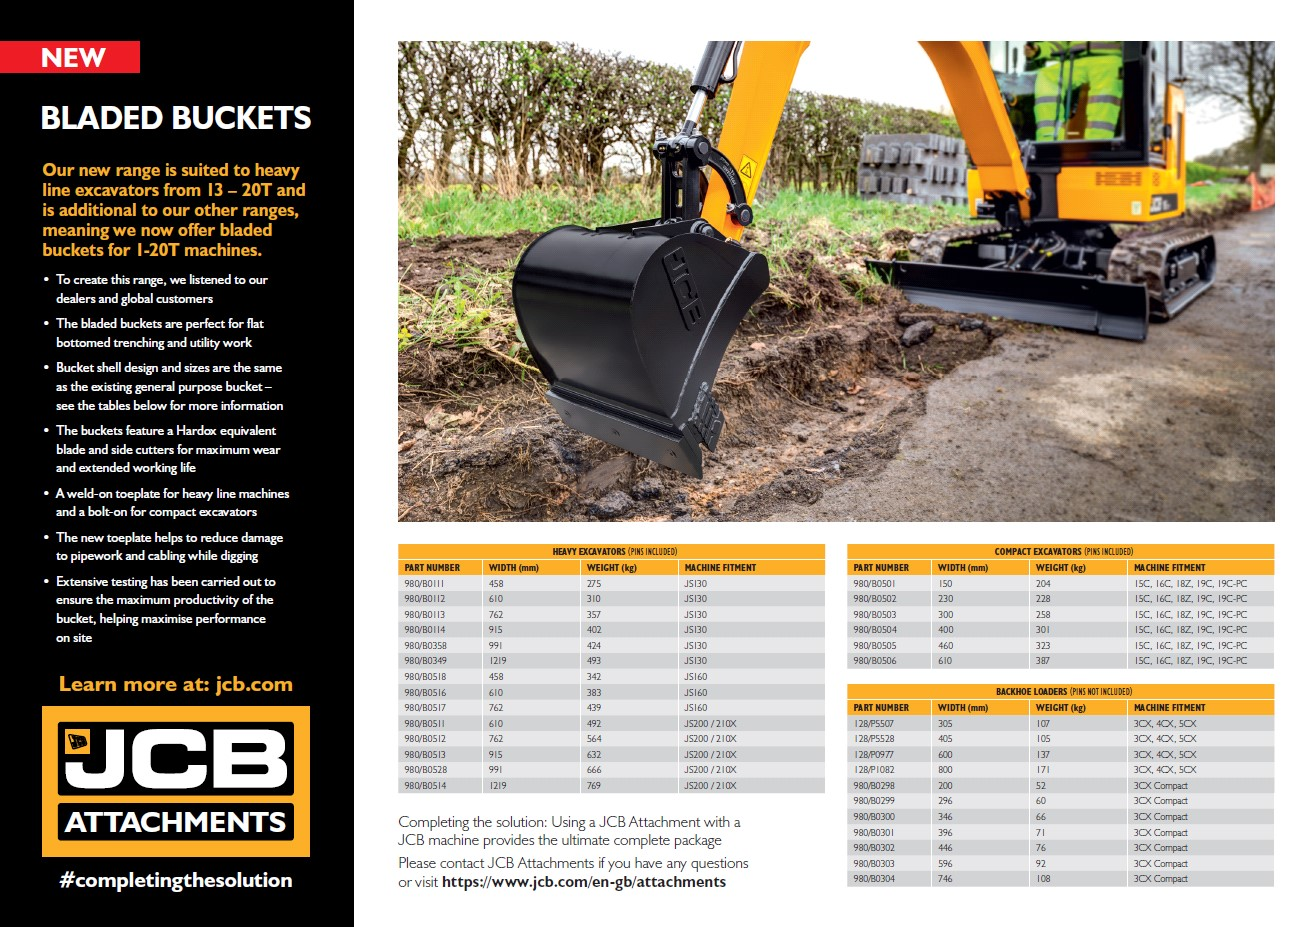 Cover Image of 1086 - JCB Attachments - Bladed Bucket Leaflet A4